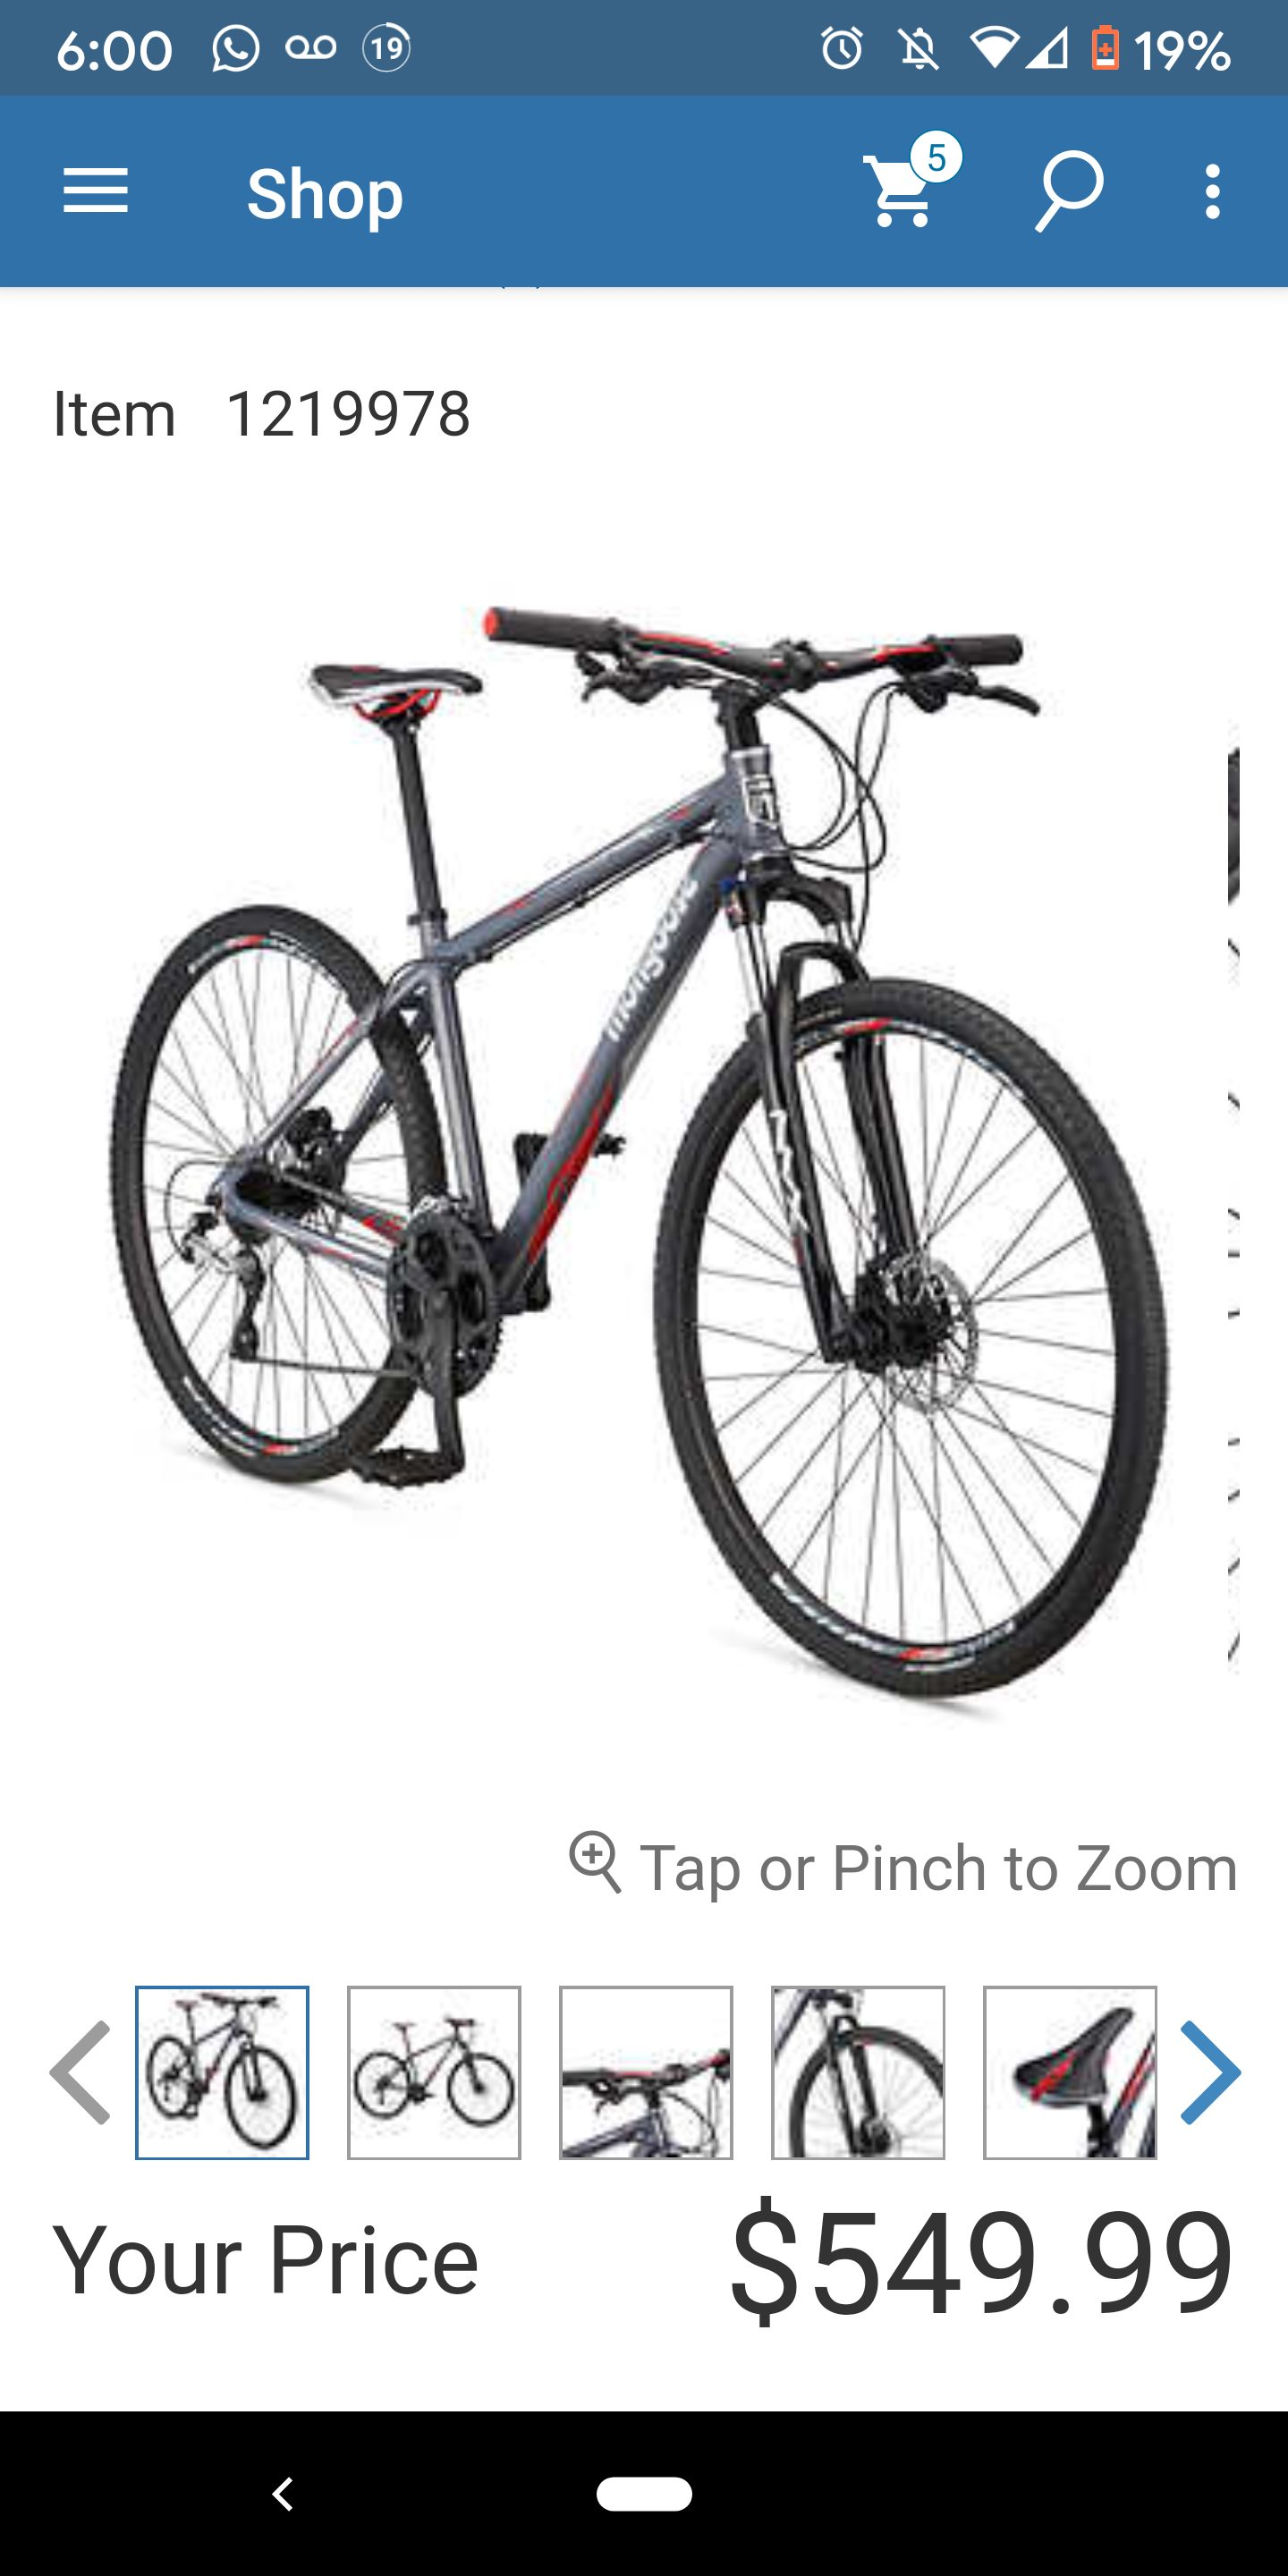 Costco Mountain Bike : costco, mountain, Costco], Costco.ca:, Mongoose, Adult, Reform, Sport, Hybrid, Bicycle, 9.99, RedFlagDeals.com, Forums